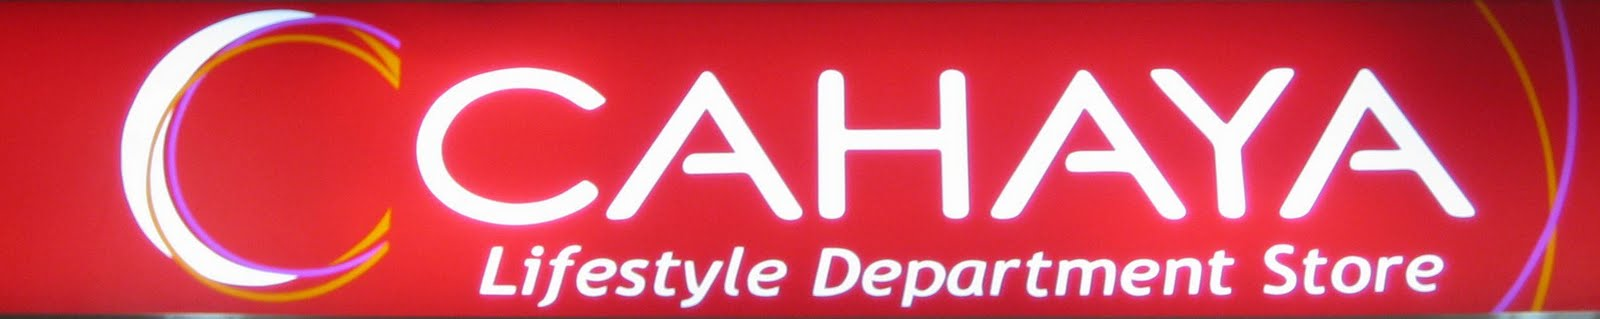 CAHAYA ONLINE DEPARTMENT STORE